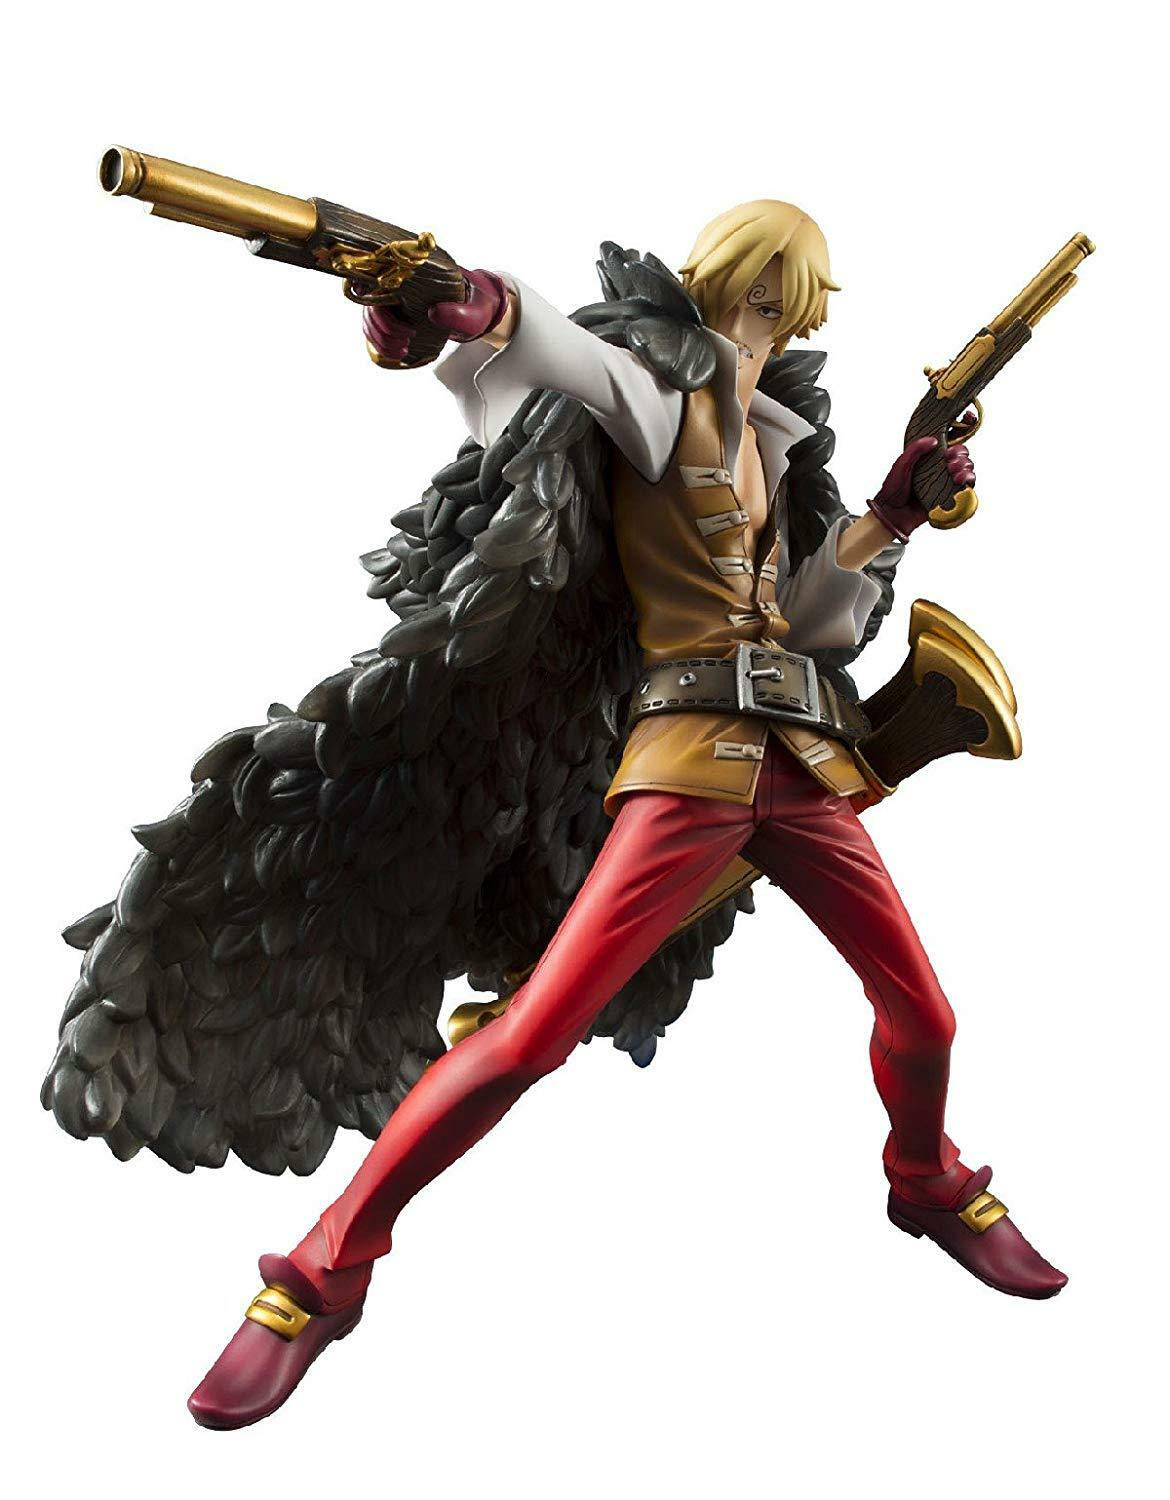 ONE PIECE P.O.P. - - - Sanji - Figure Megahouse POP Film Z Edition d38b8d